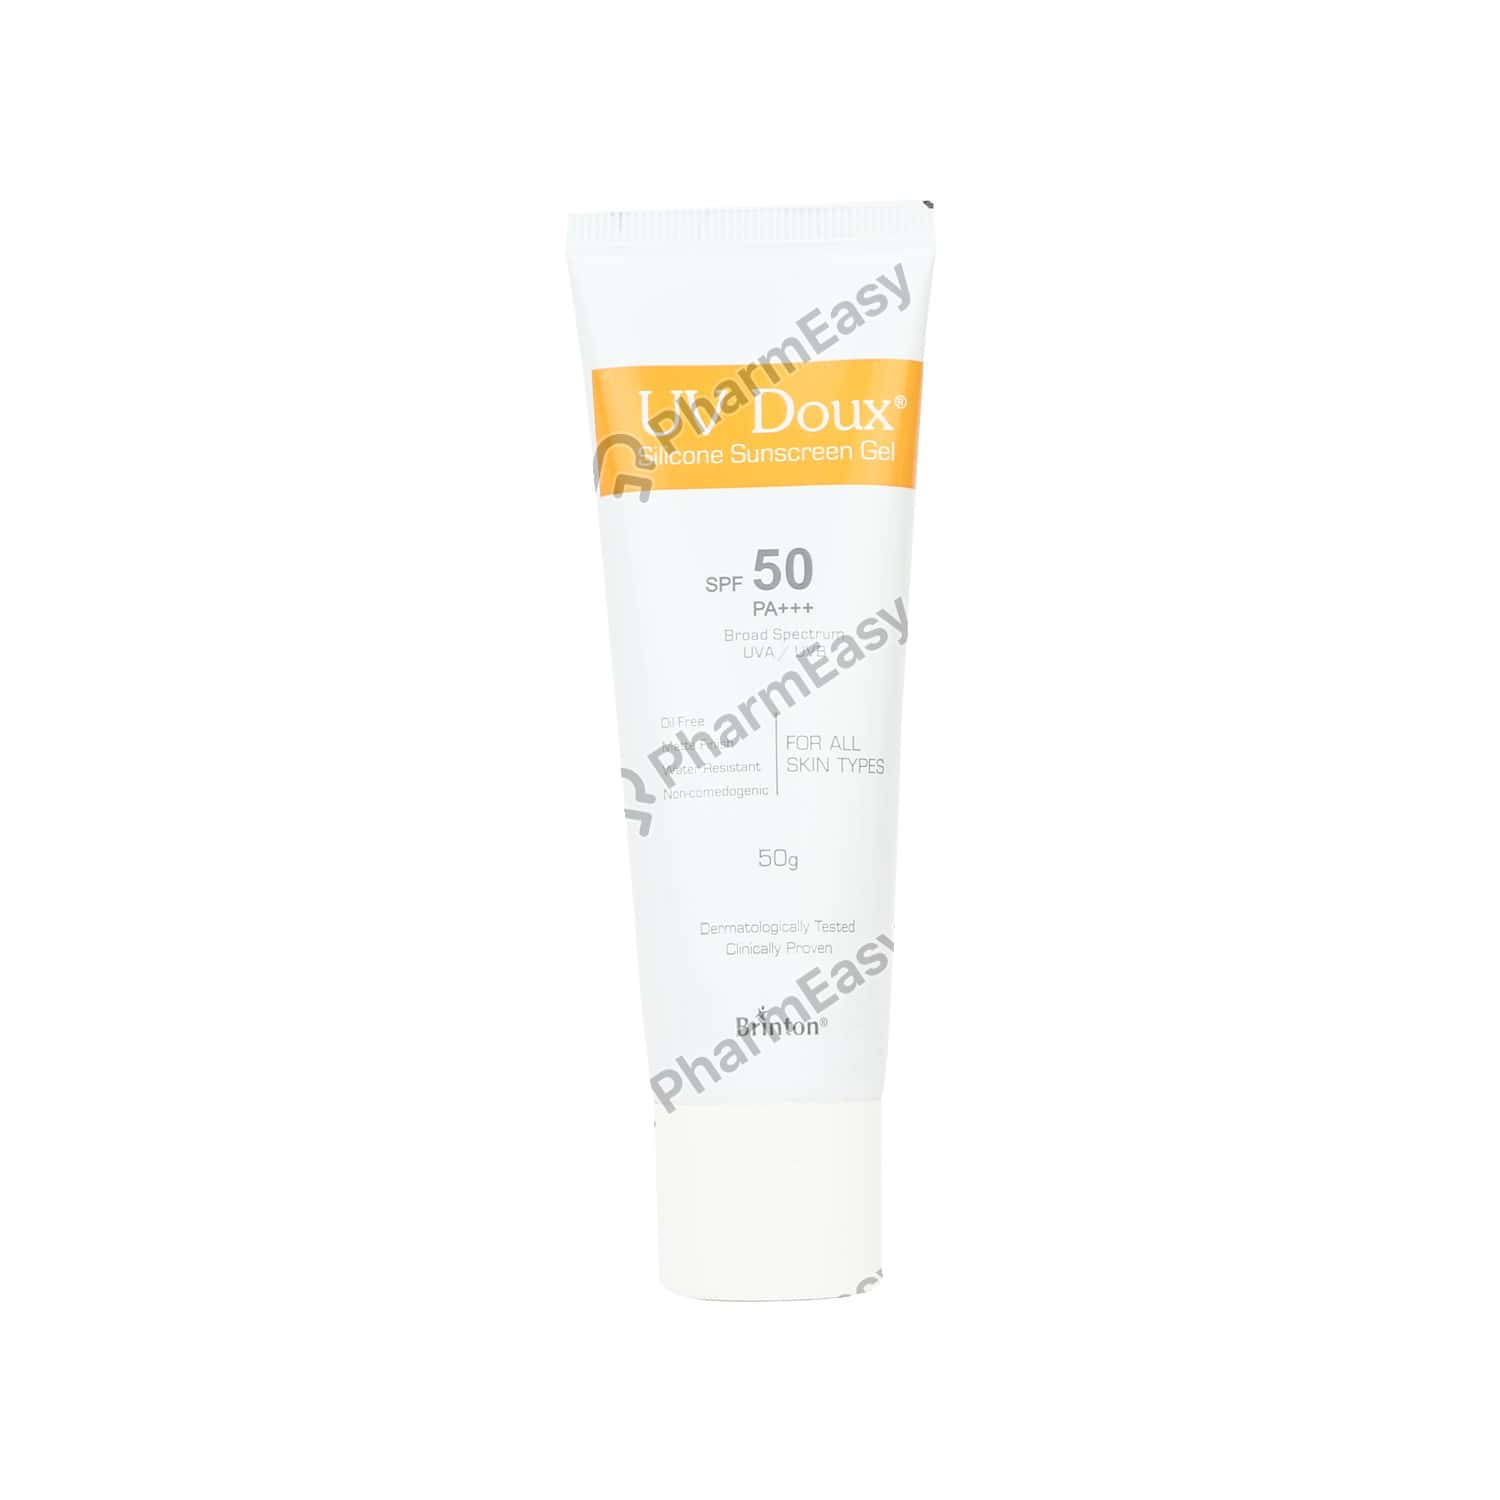 Uv Doux Spf 50 Sunscreen Gel 50gm